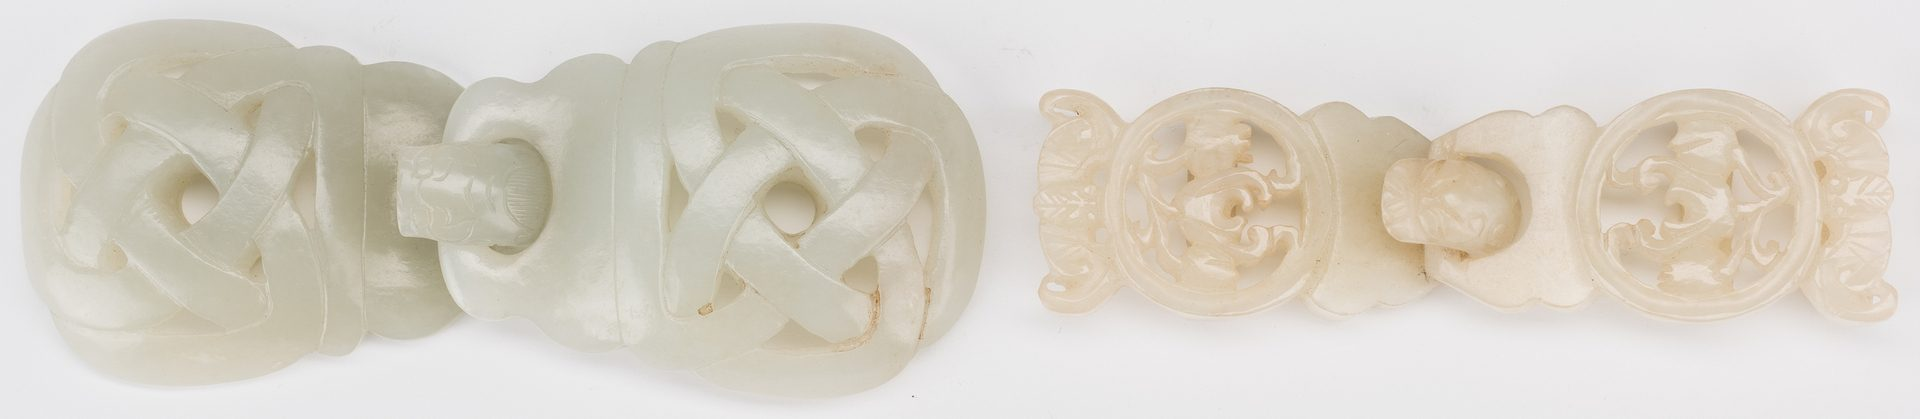 Lot 4: 2 Chinese Celadon Jade Buckles